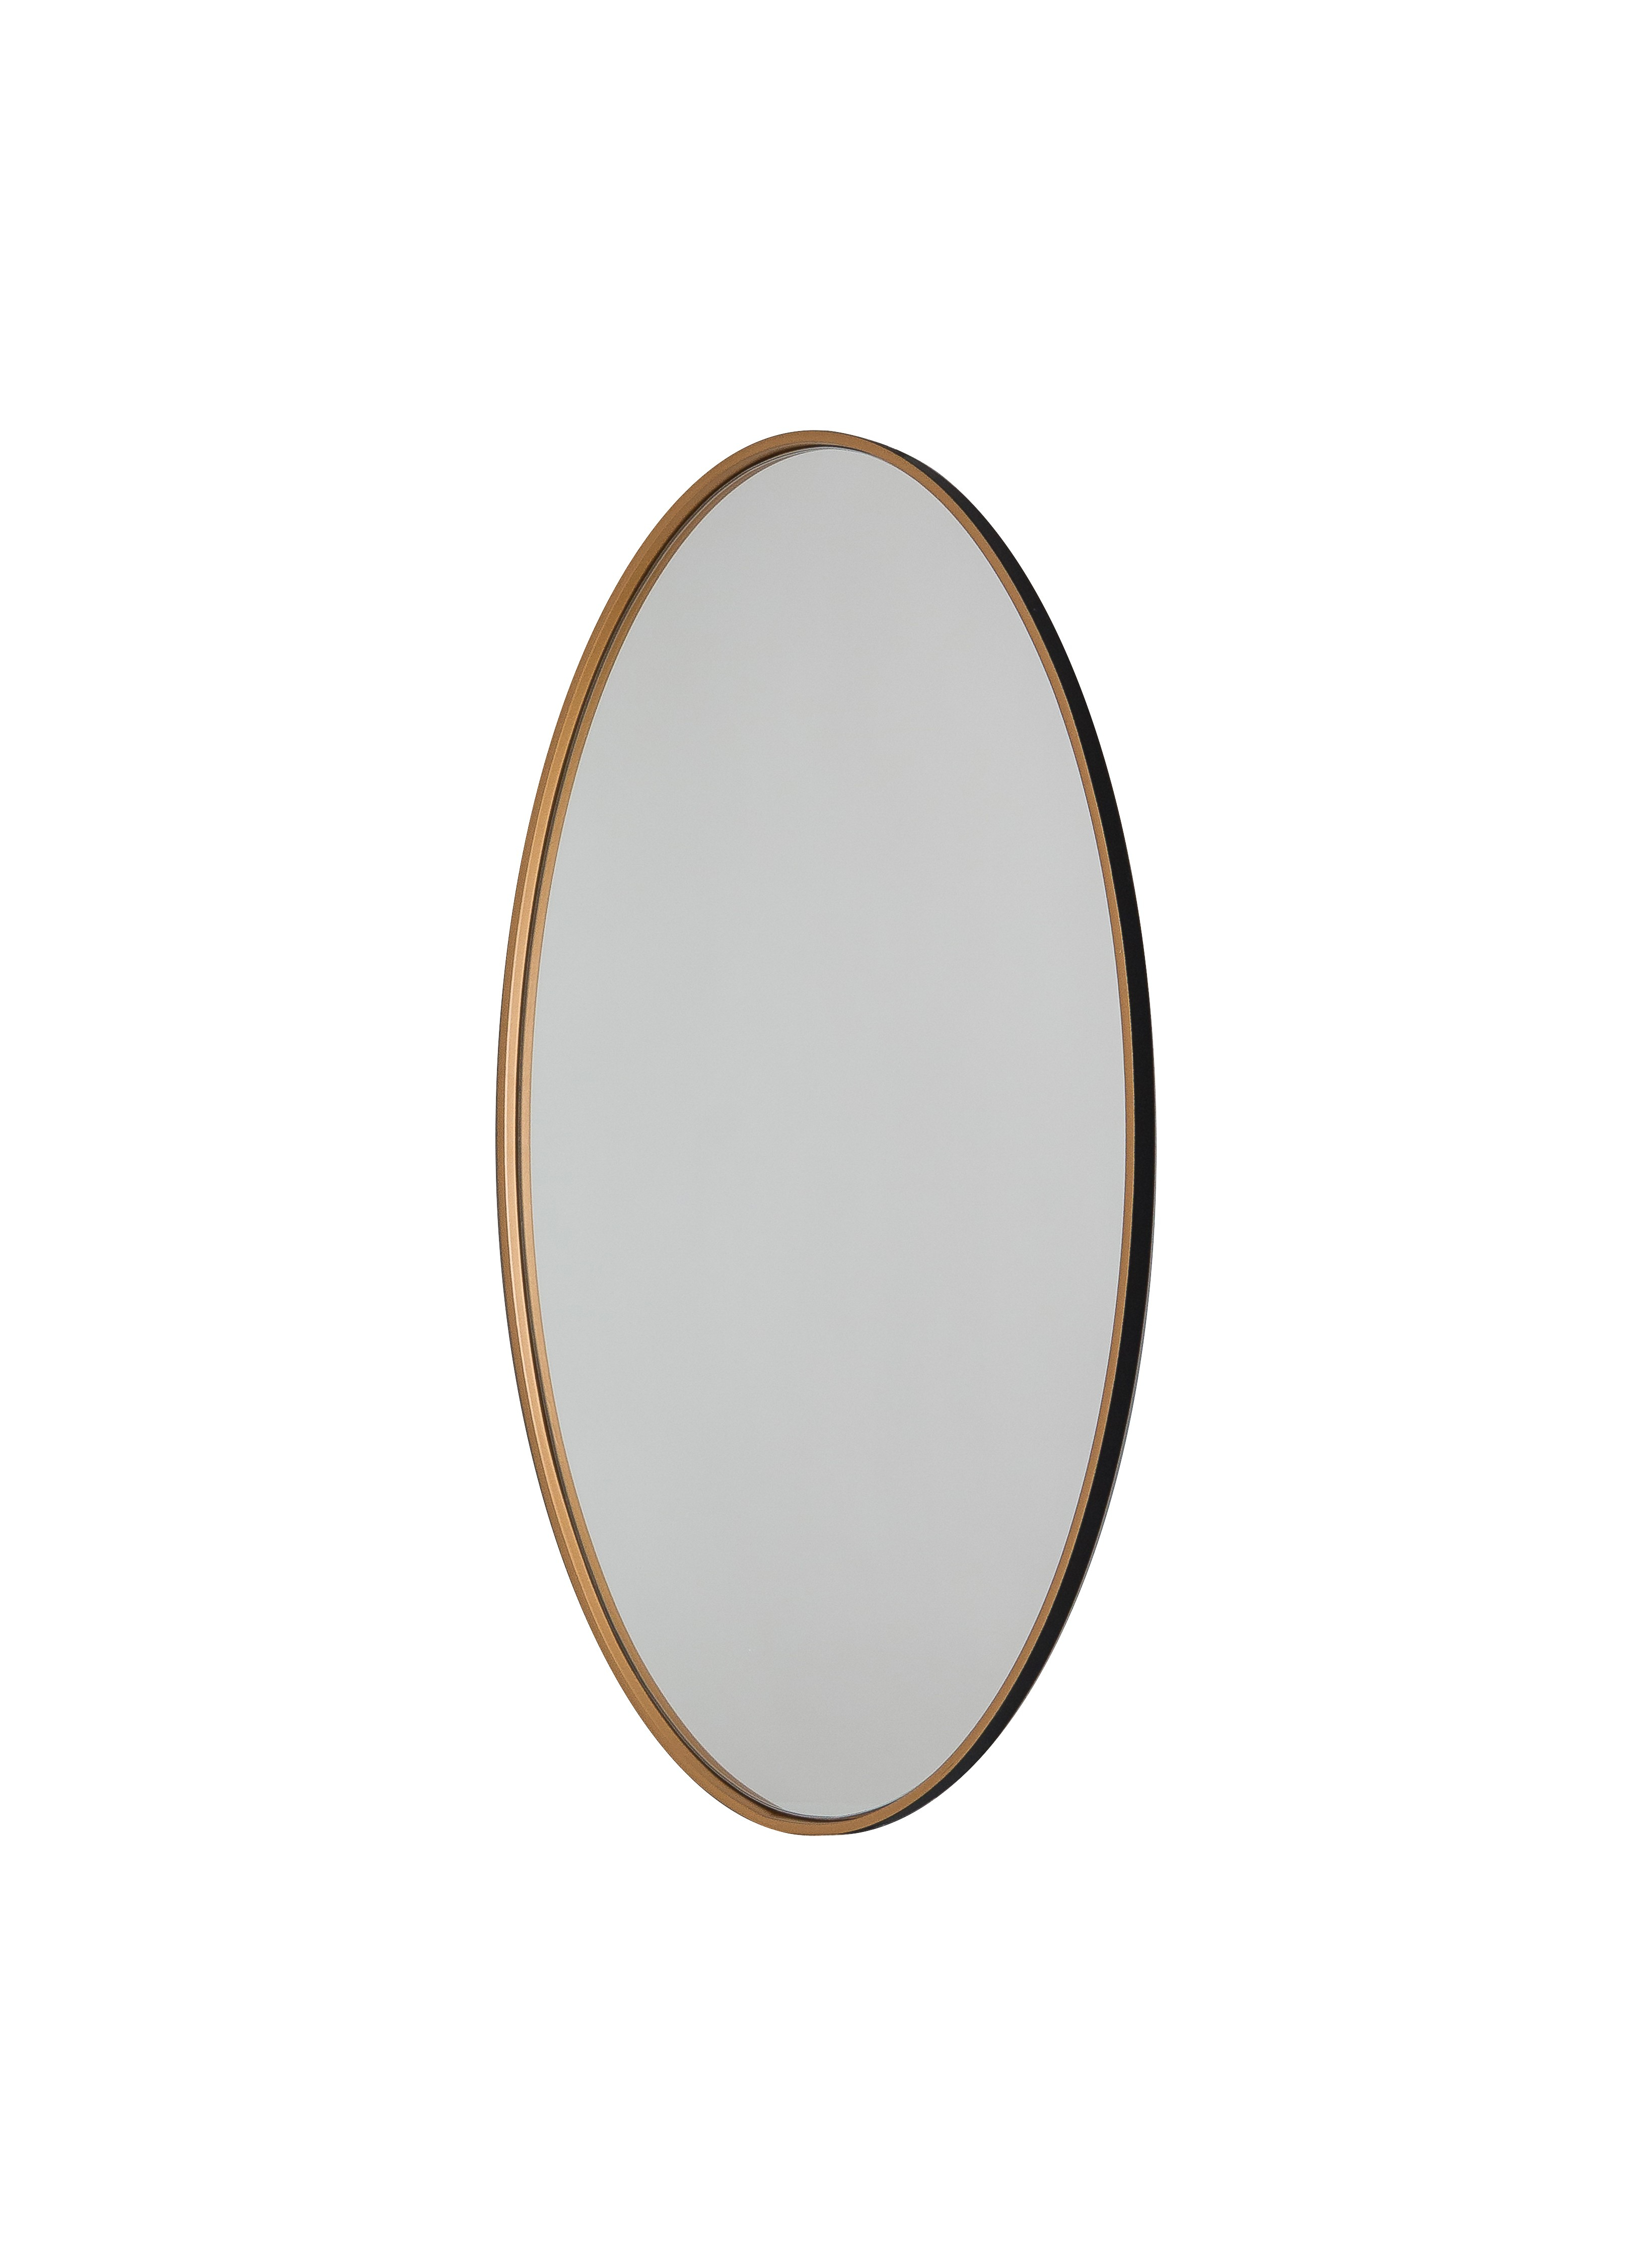 Andrea Oval Wooden Wall Mirror In Black And Gold Colour Inside Oval Wood Wall Mirrors (View 3 of 30)